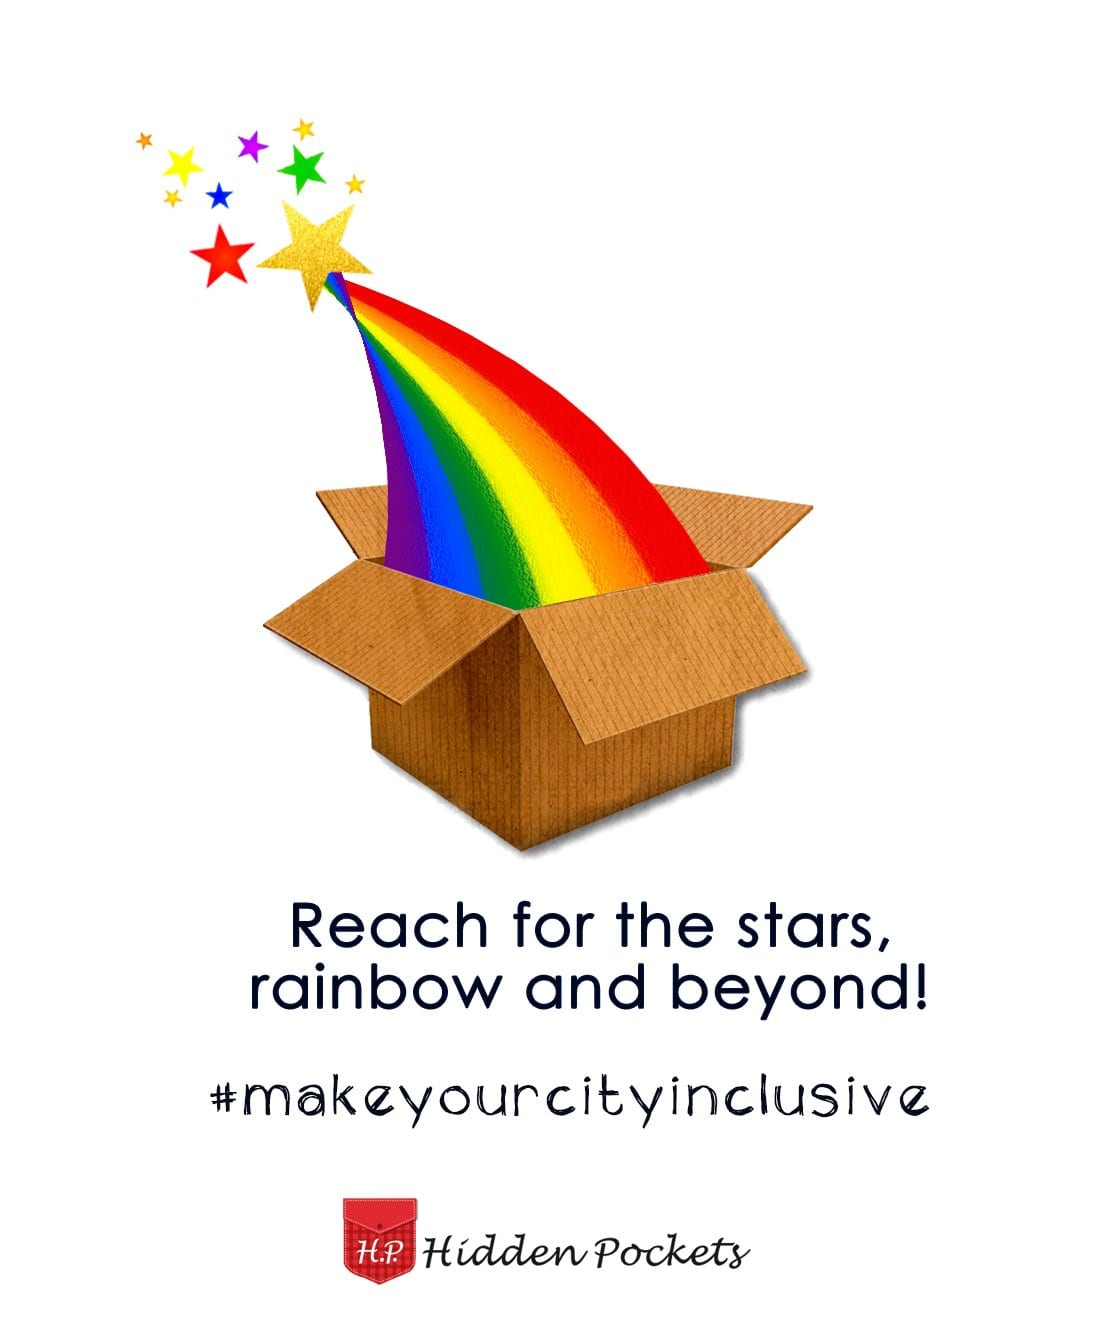 Reach for the stars, rainbow and beyond! #makeyourcityinclusive goes to Kochi